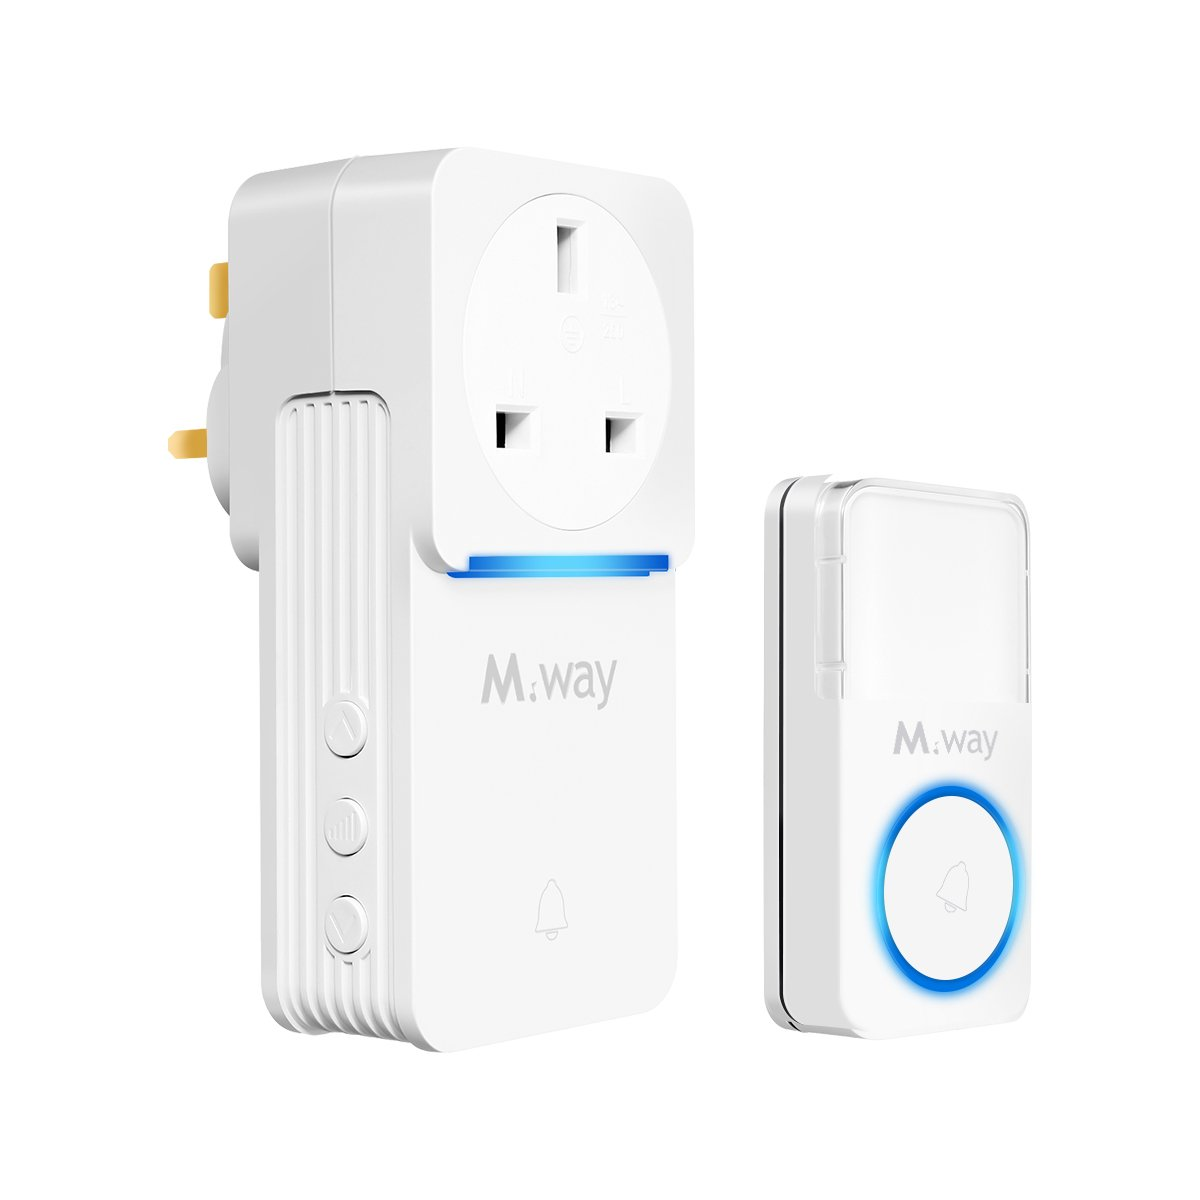 Wireless Doorbell, M.Way Waterproof Plug-through Doorbell Chime Kit Portable Door Bell 280M Remote Range Doorbell with 52 Melody Chime, for Office, Hotel, Home, Store (1 Receiver and 1 Transmitter) UK Luouc jianyu